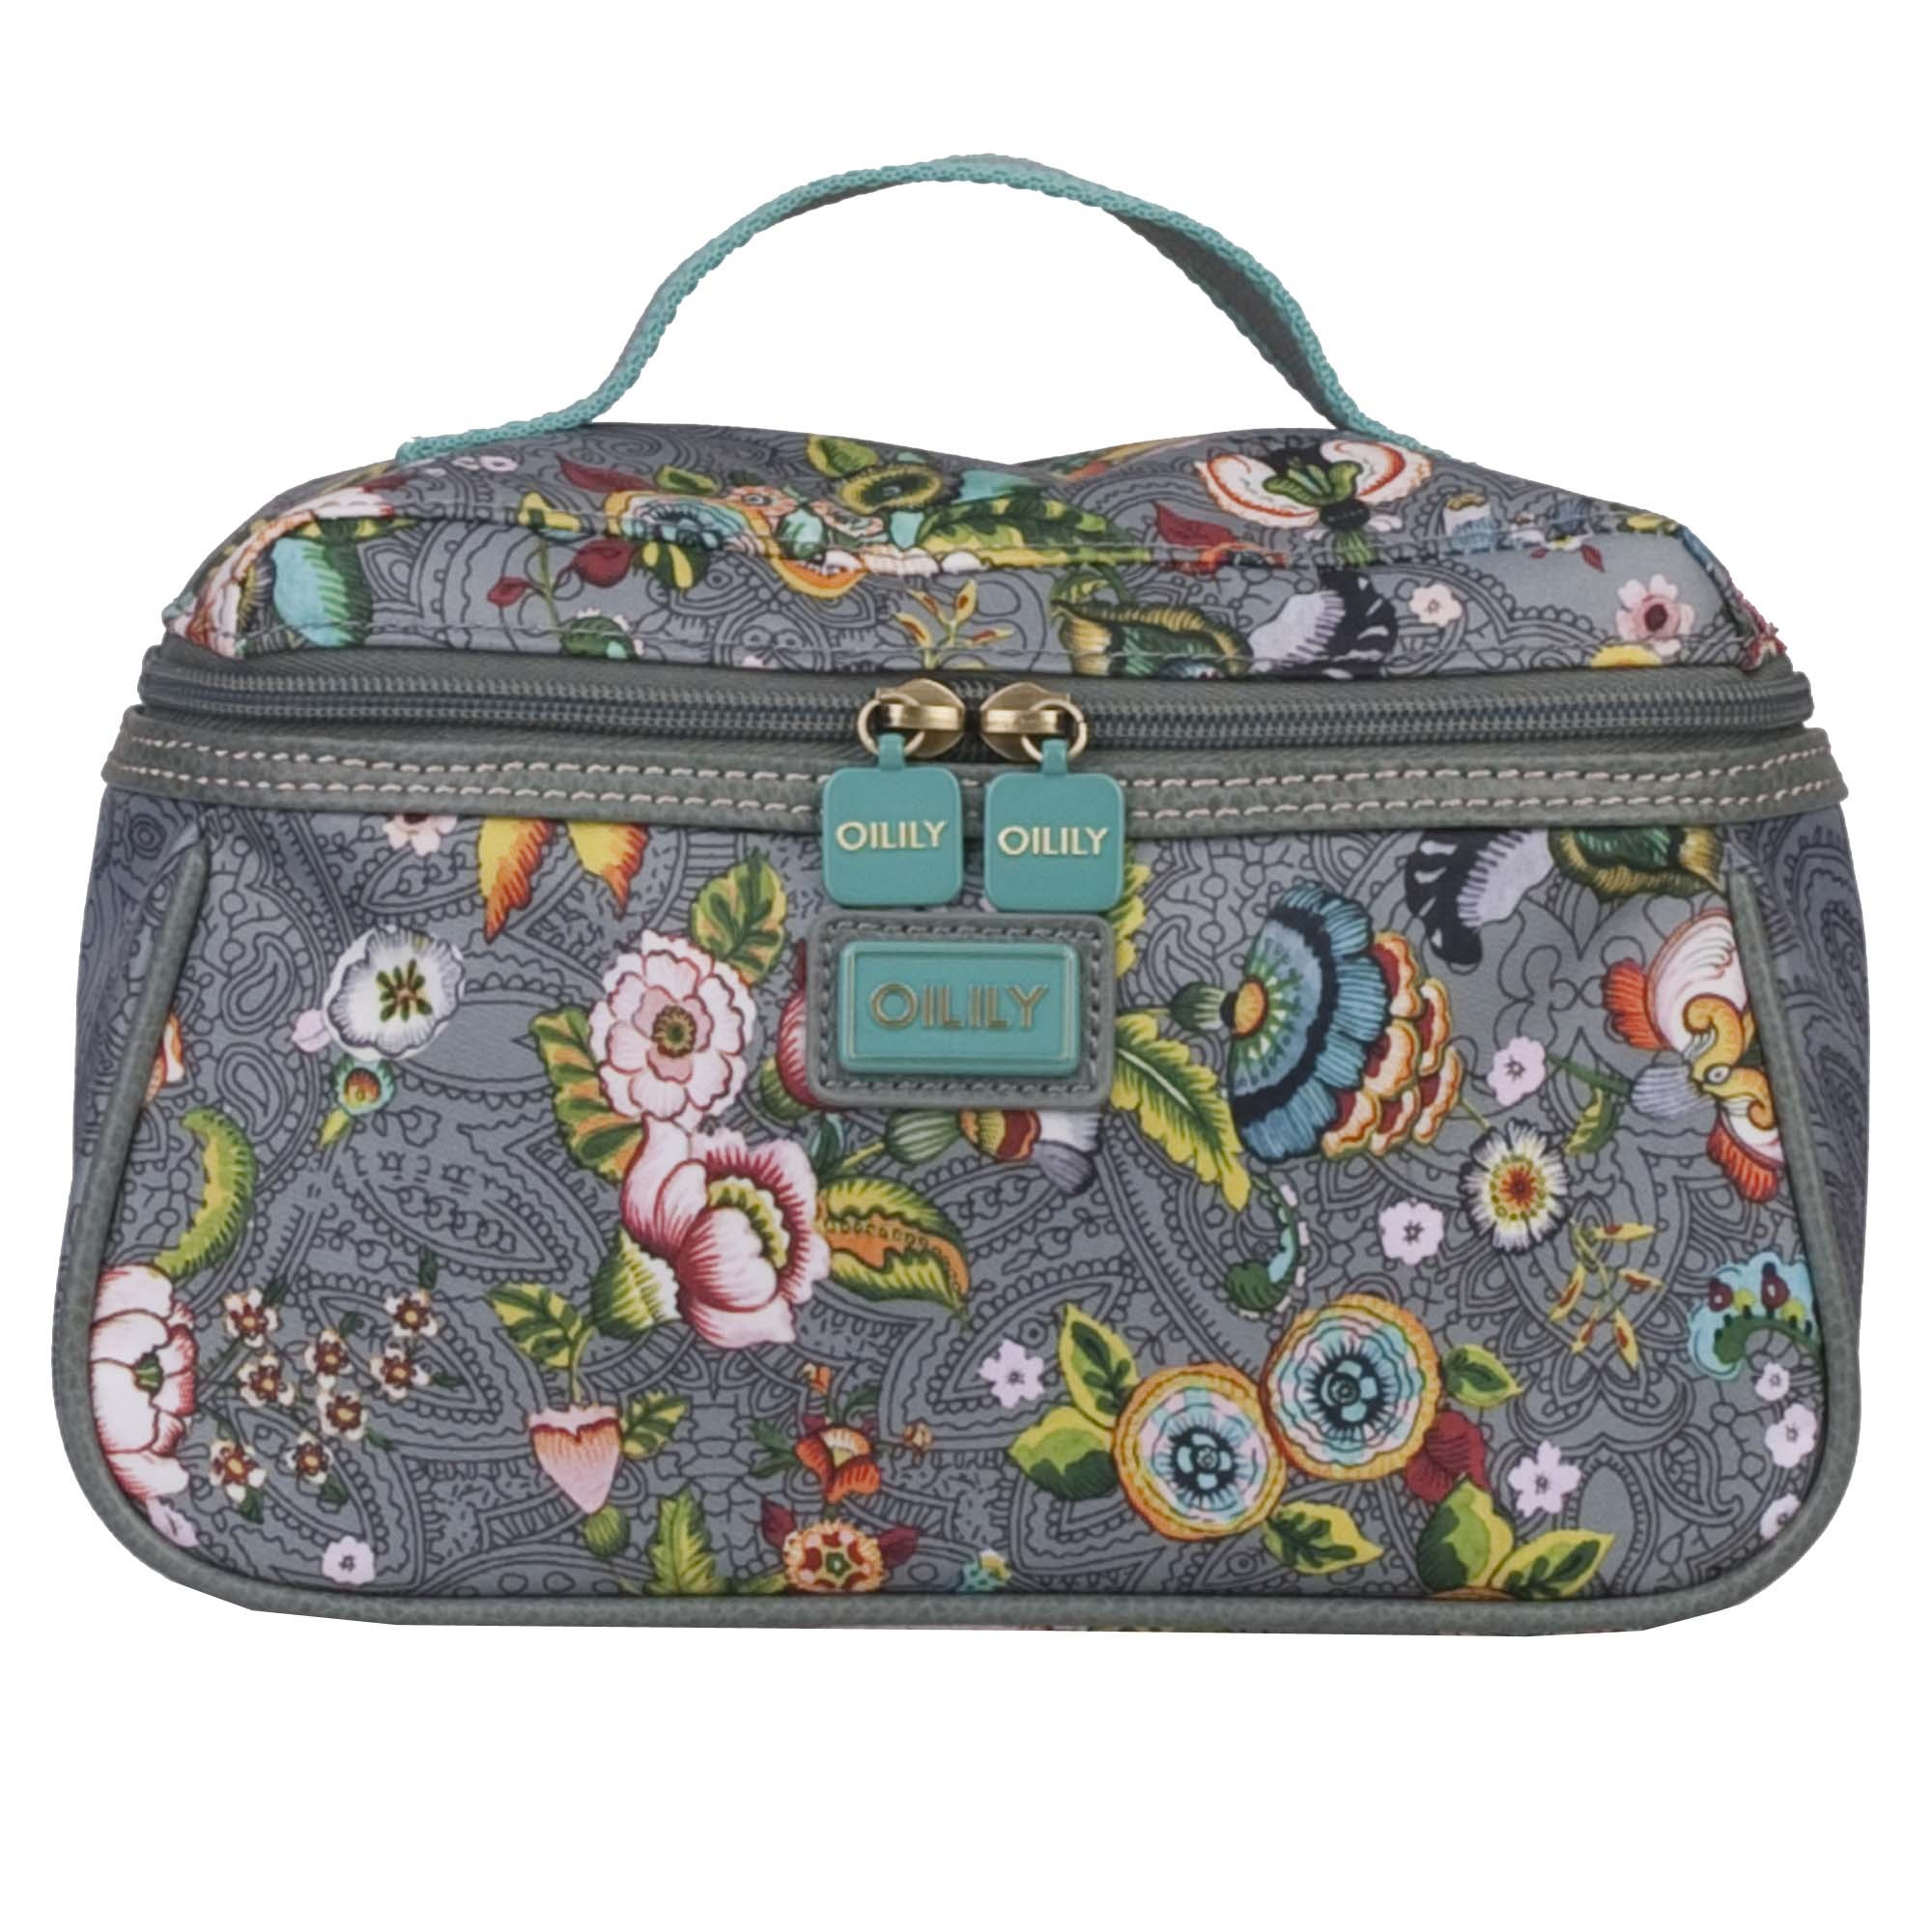 oilily french flowers kosmetiktasche m beauty case in pink grey oder tobacco ebay. Black Bedroom Furniture Sets. Home Design Ideas